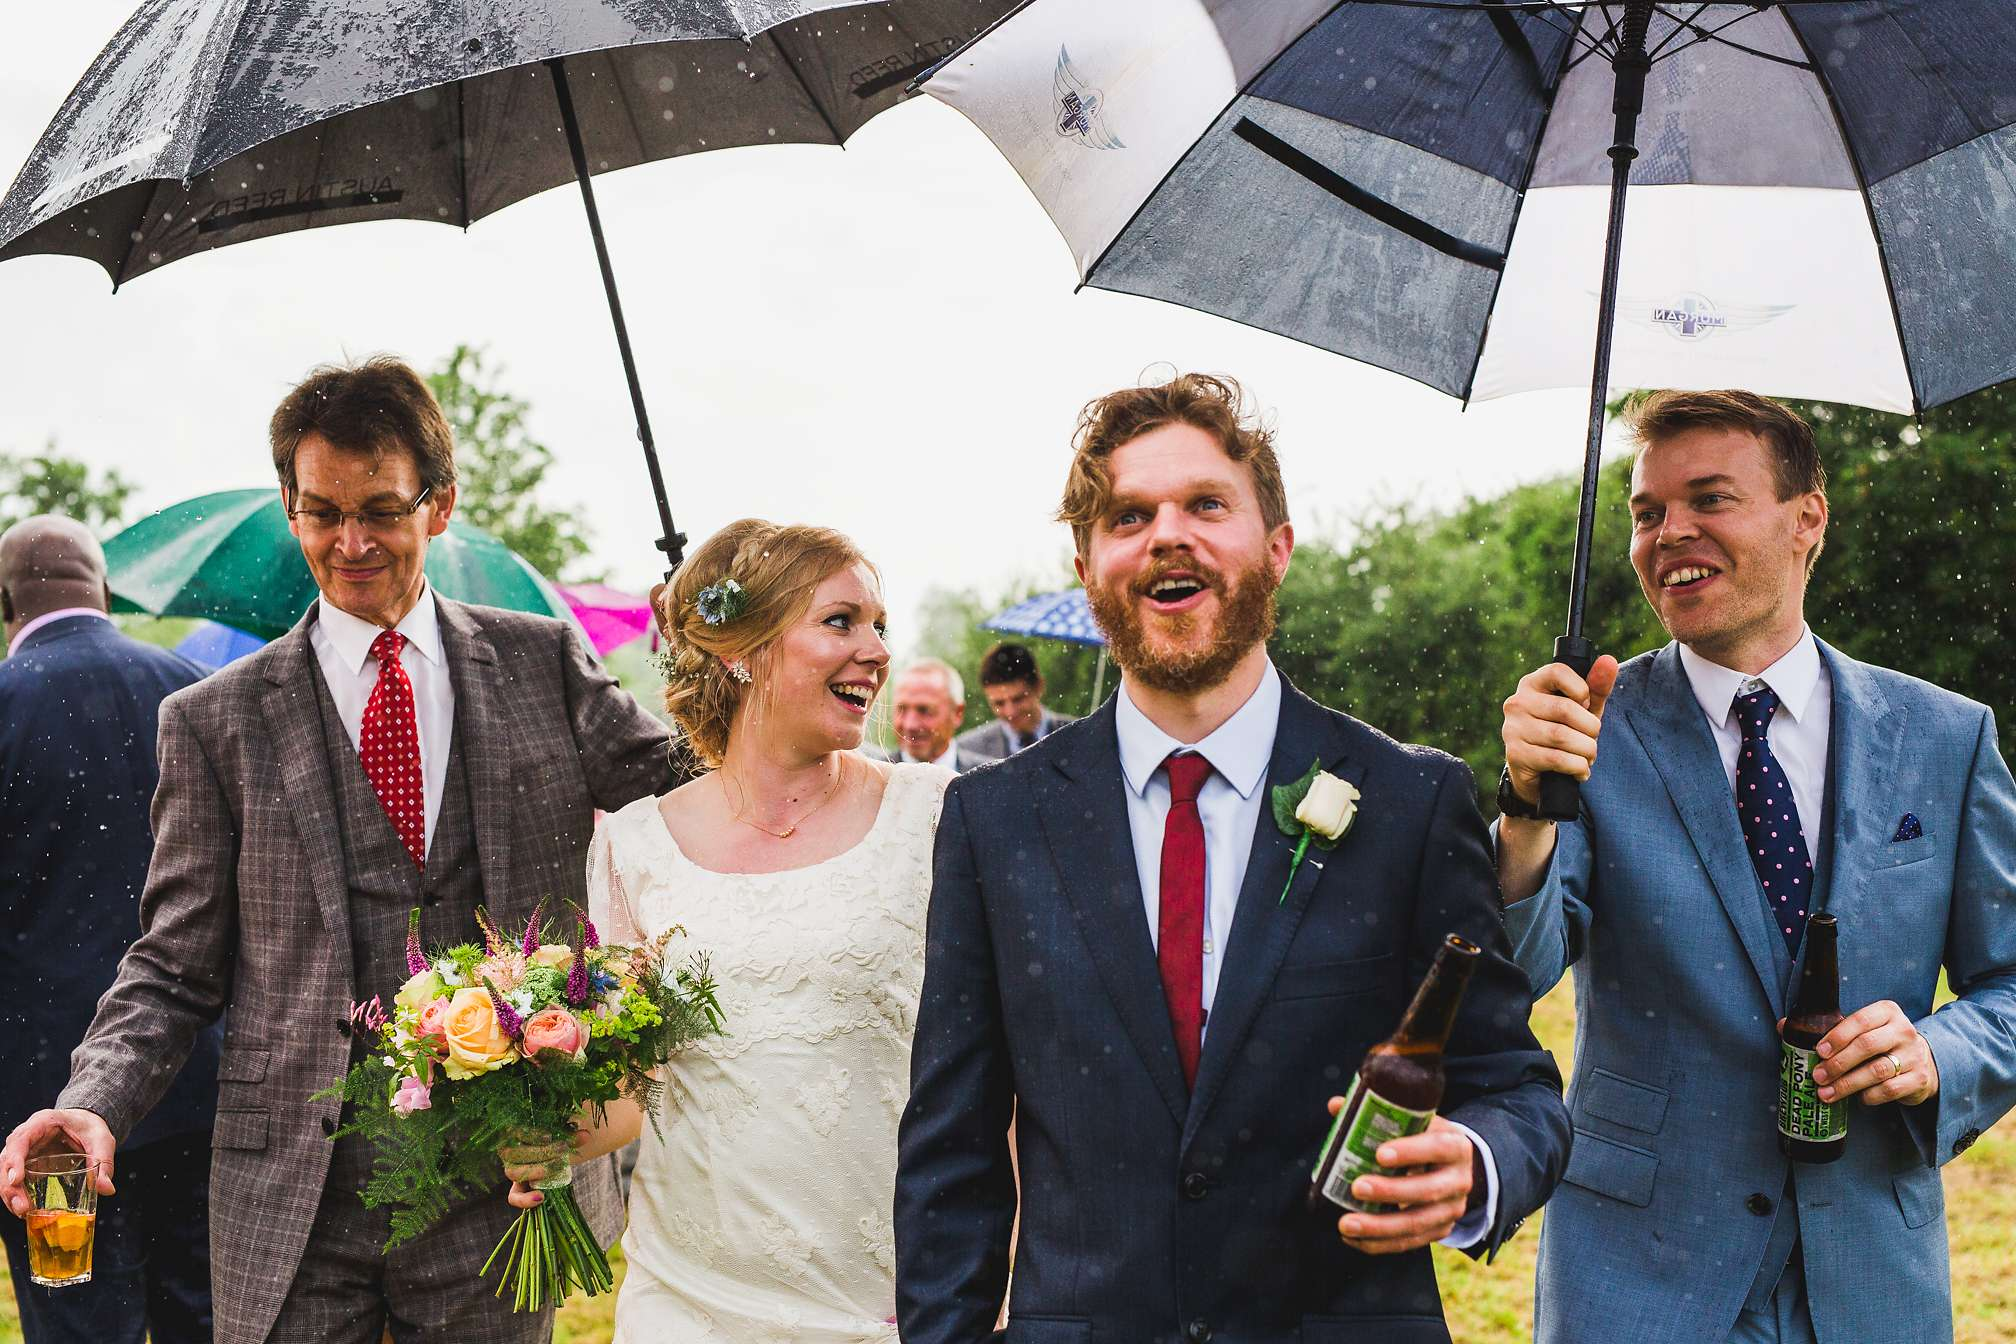 DIY yurt wedding in the rain